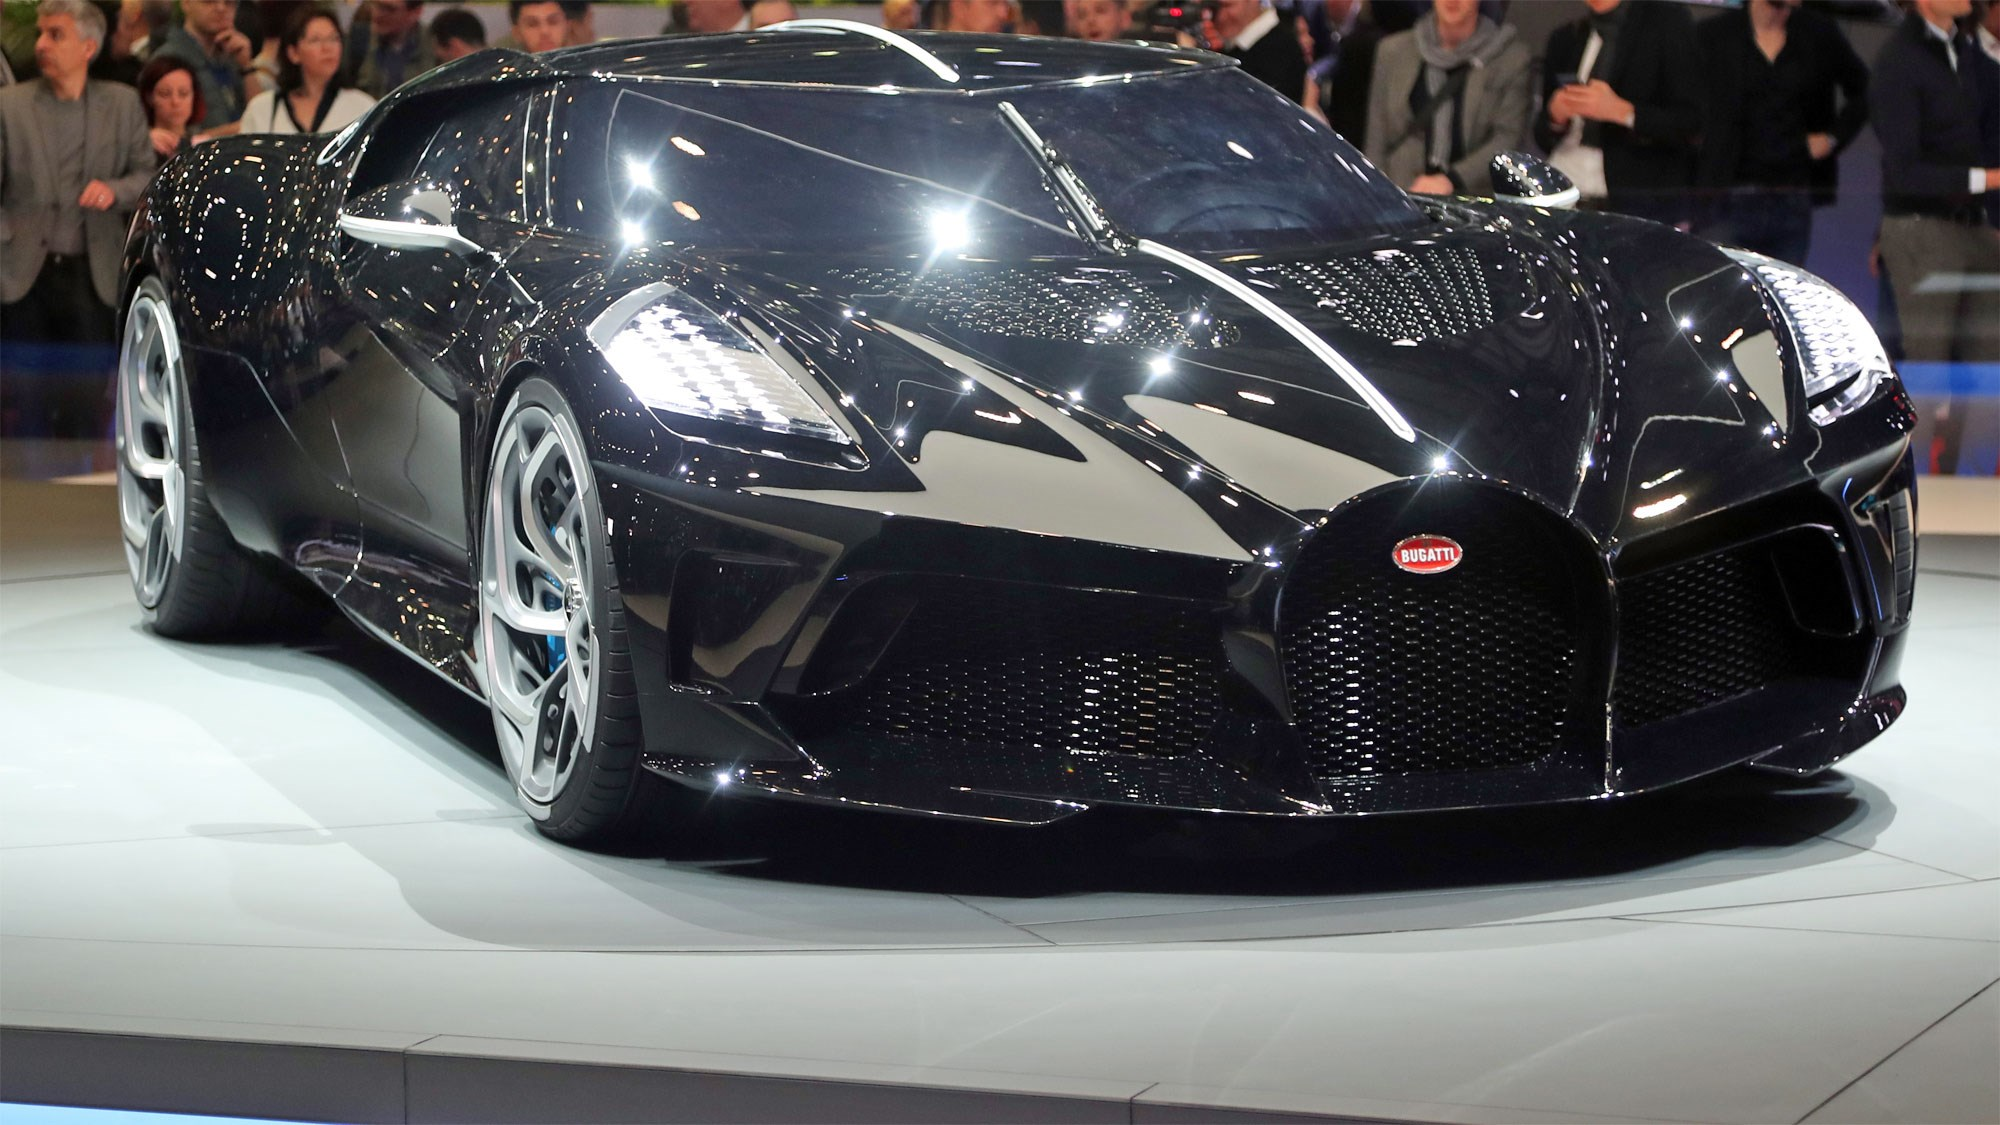 Bugatti Voiture Noire 163 13m Hyper Coupe Is World S Most